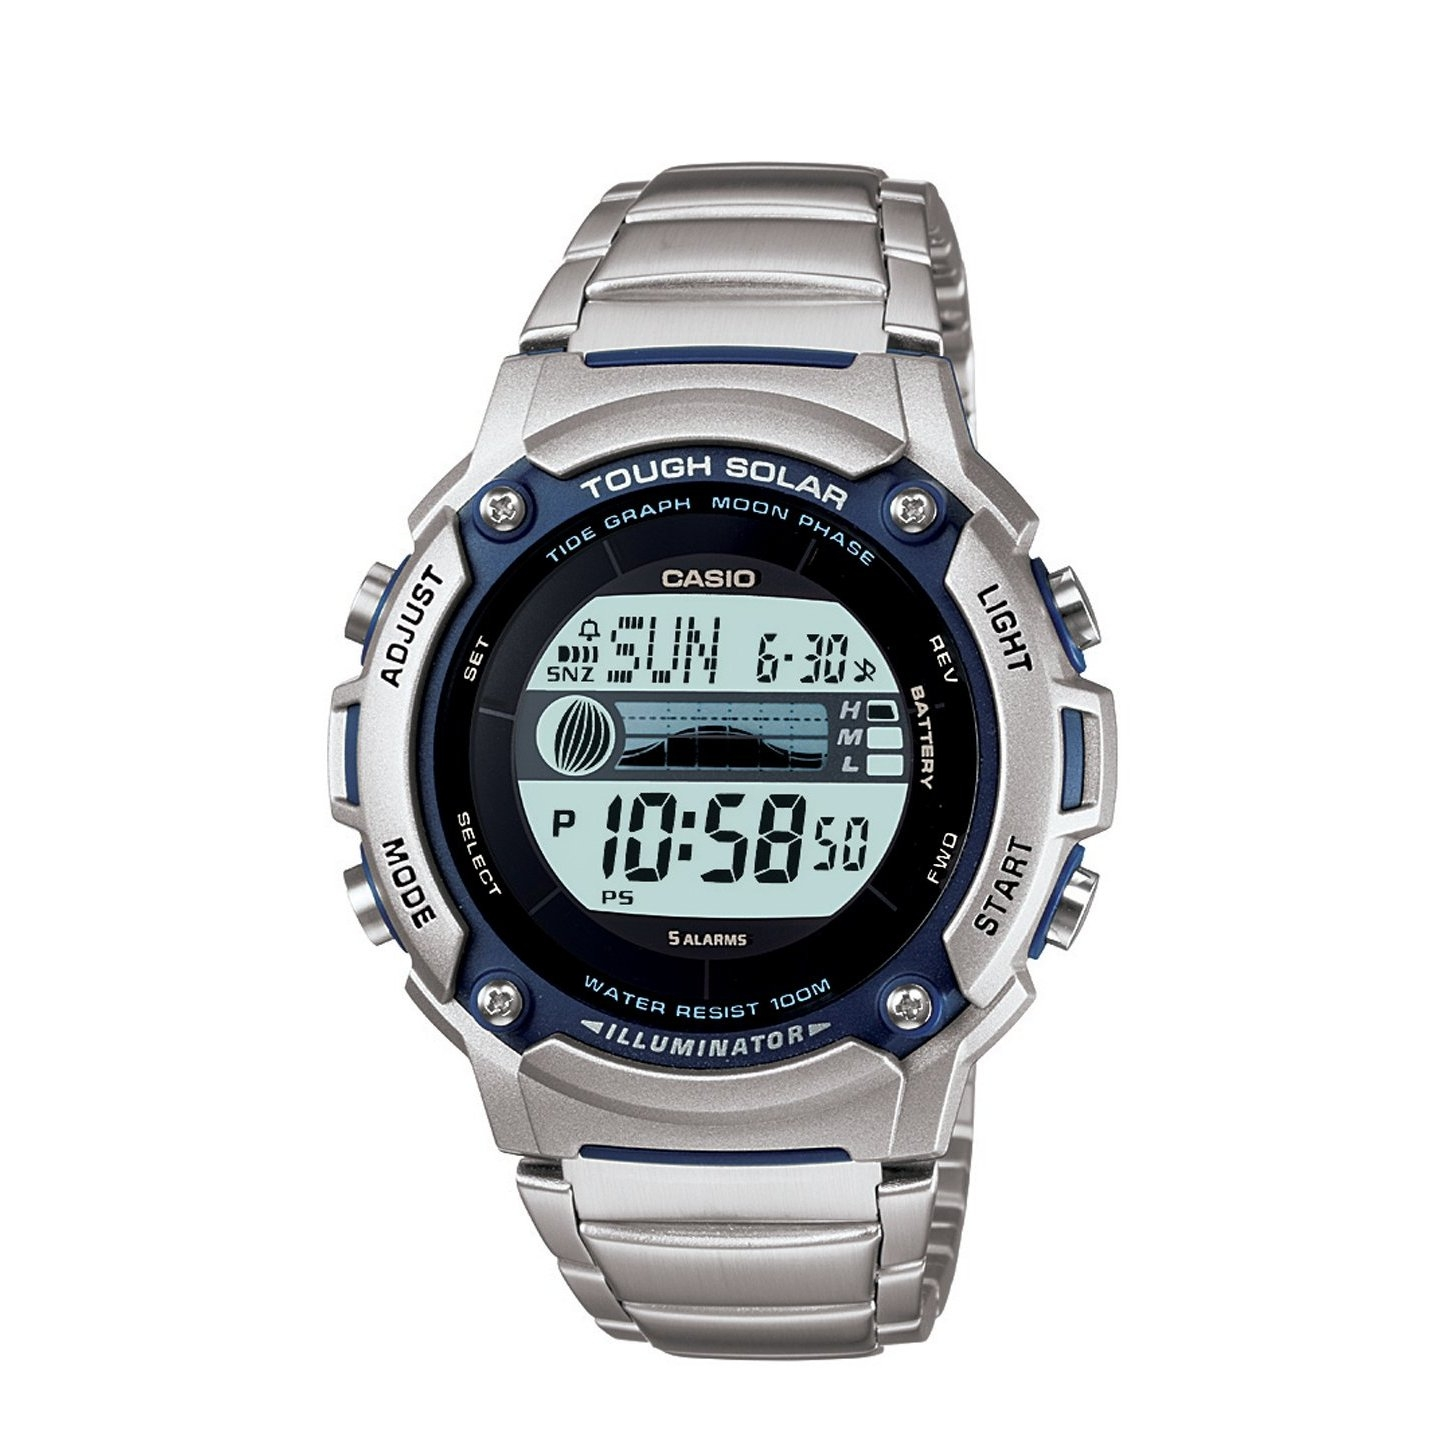 Casio Gents Solar Powered Watch W S210hd 1avcf Plus Belles Jam Safir Ceas Lineage Titan Multiband 6 Olxro